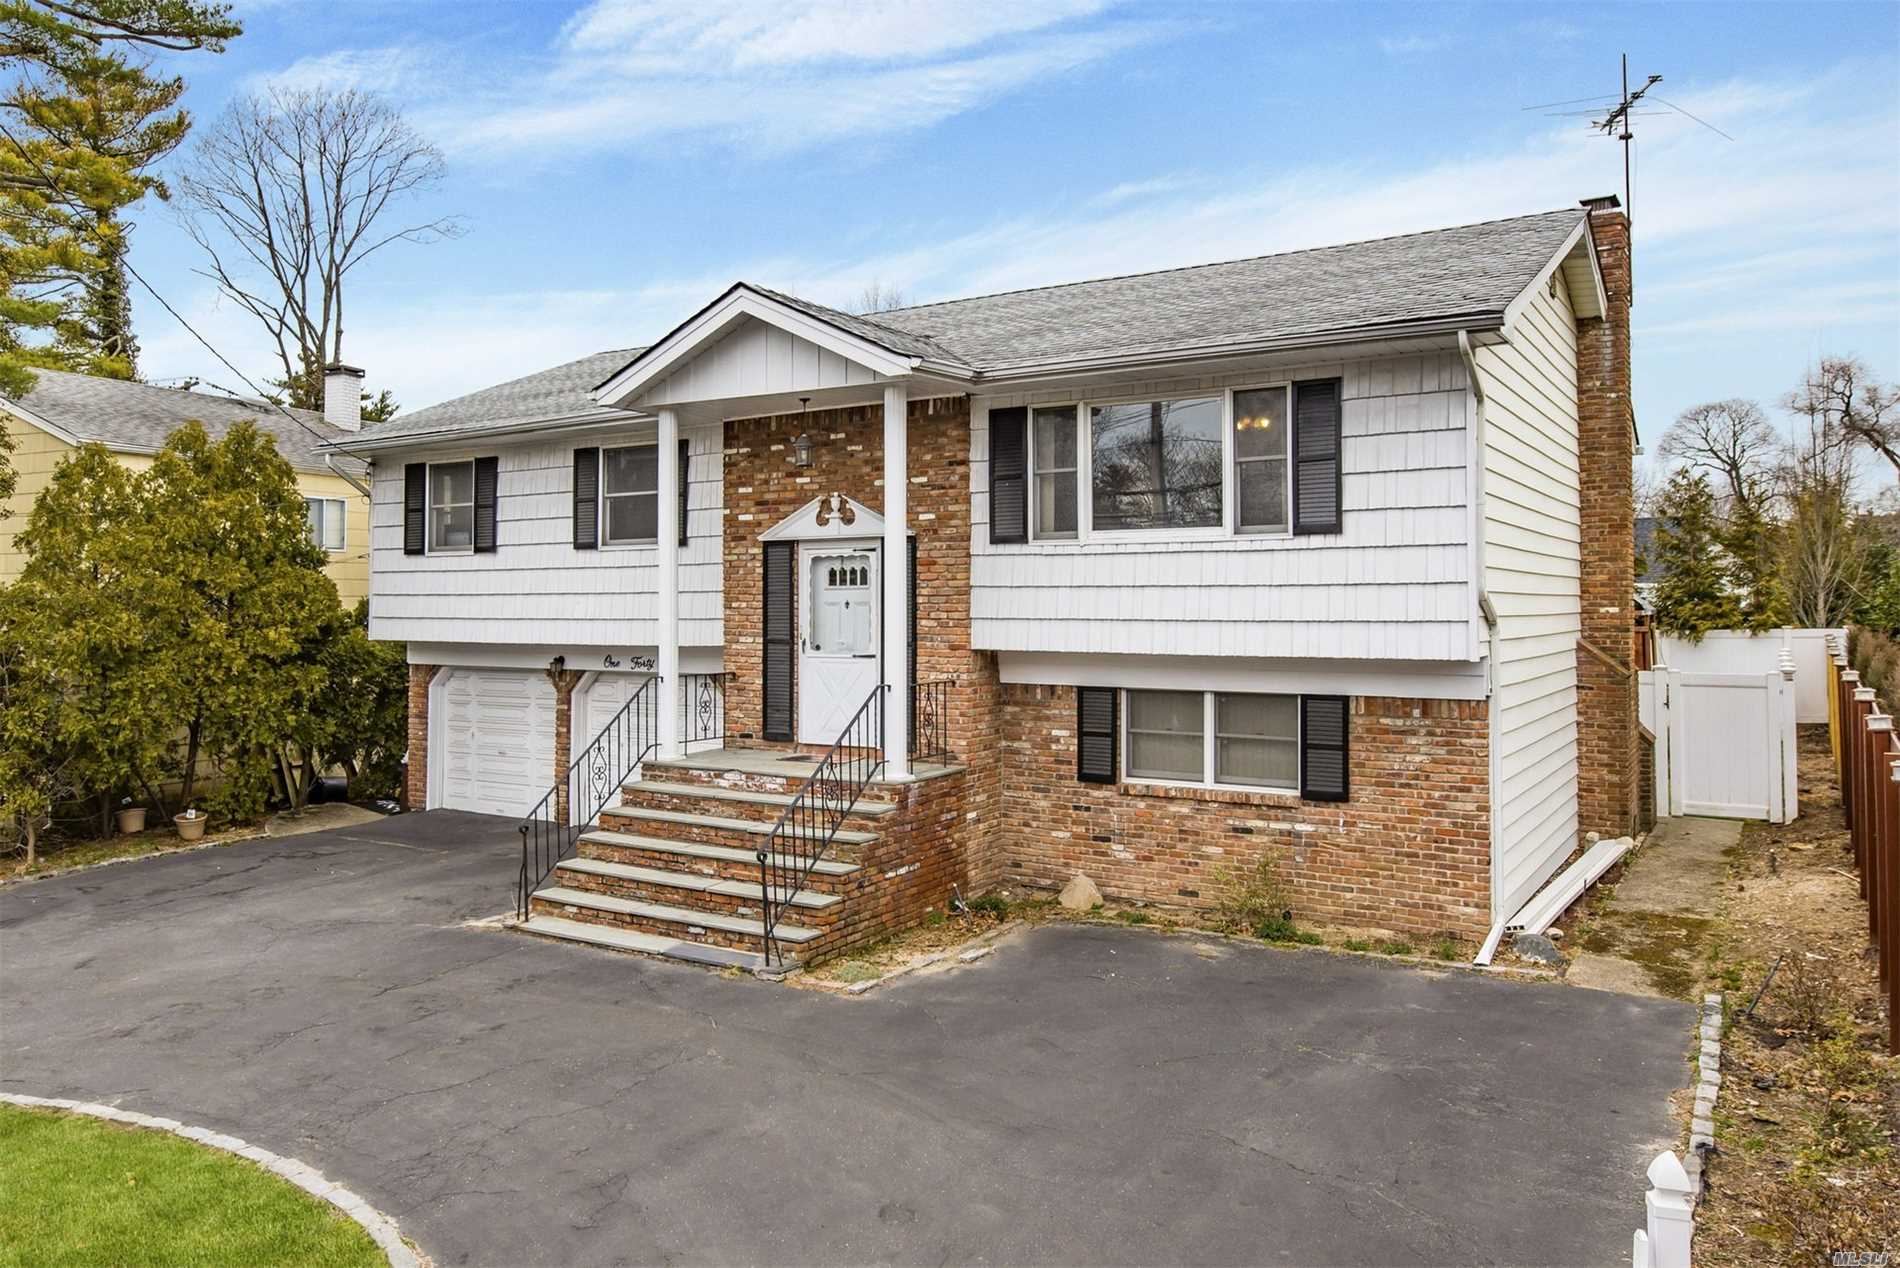 Light and spacious, well maintained raised ranch in the highly desirable Hewlett-Woodmere S.D. Newer roof, AC, baths, and upgraded kitchen. Wood floors throughout, fireplace in family room, two master bedrooms, outside deck off kitchen, huge garage, and parking for six cars. Possible mother/daughter with proper permits. 15 mins. to Kennedy Airport, 35 mins to Penn Station via LIRR.